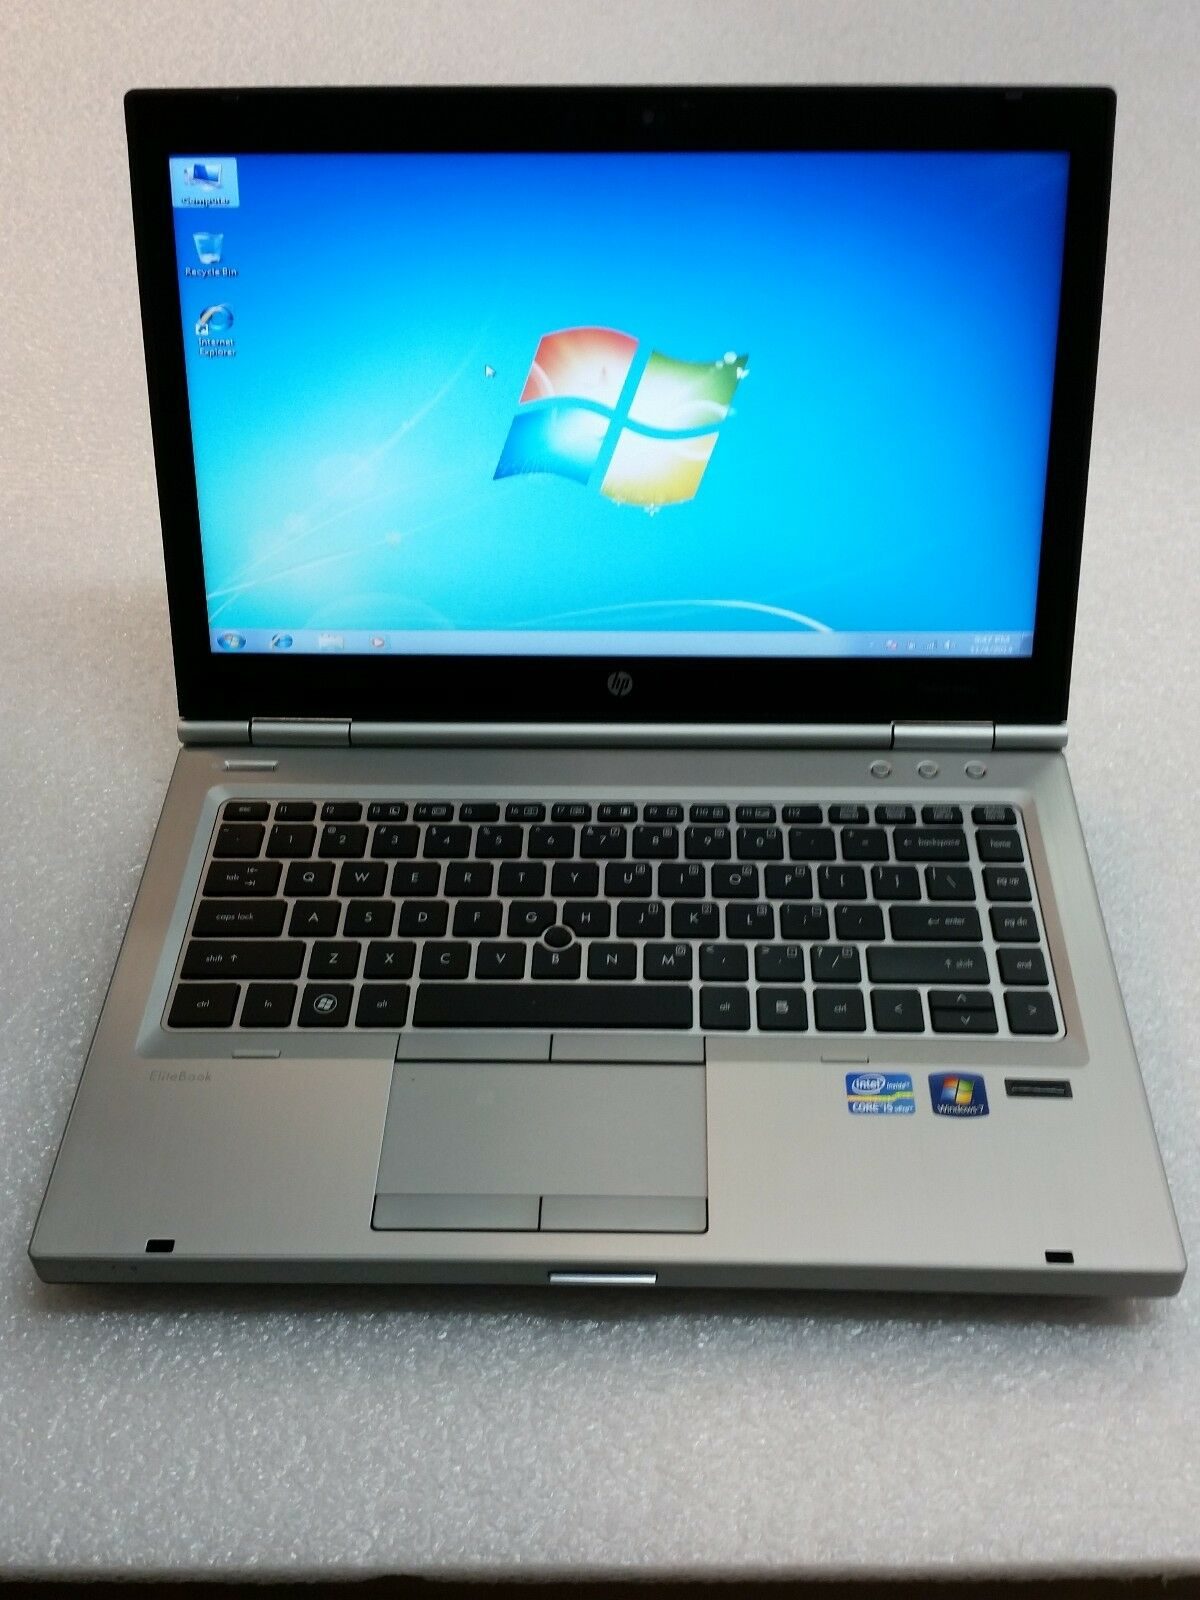 Hp Elitebook 8460p Hp Elitebook 8460p Core I5 2520m 2 5 Laptop 320gb 4gb Win